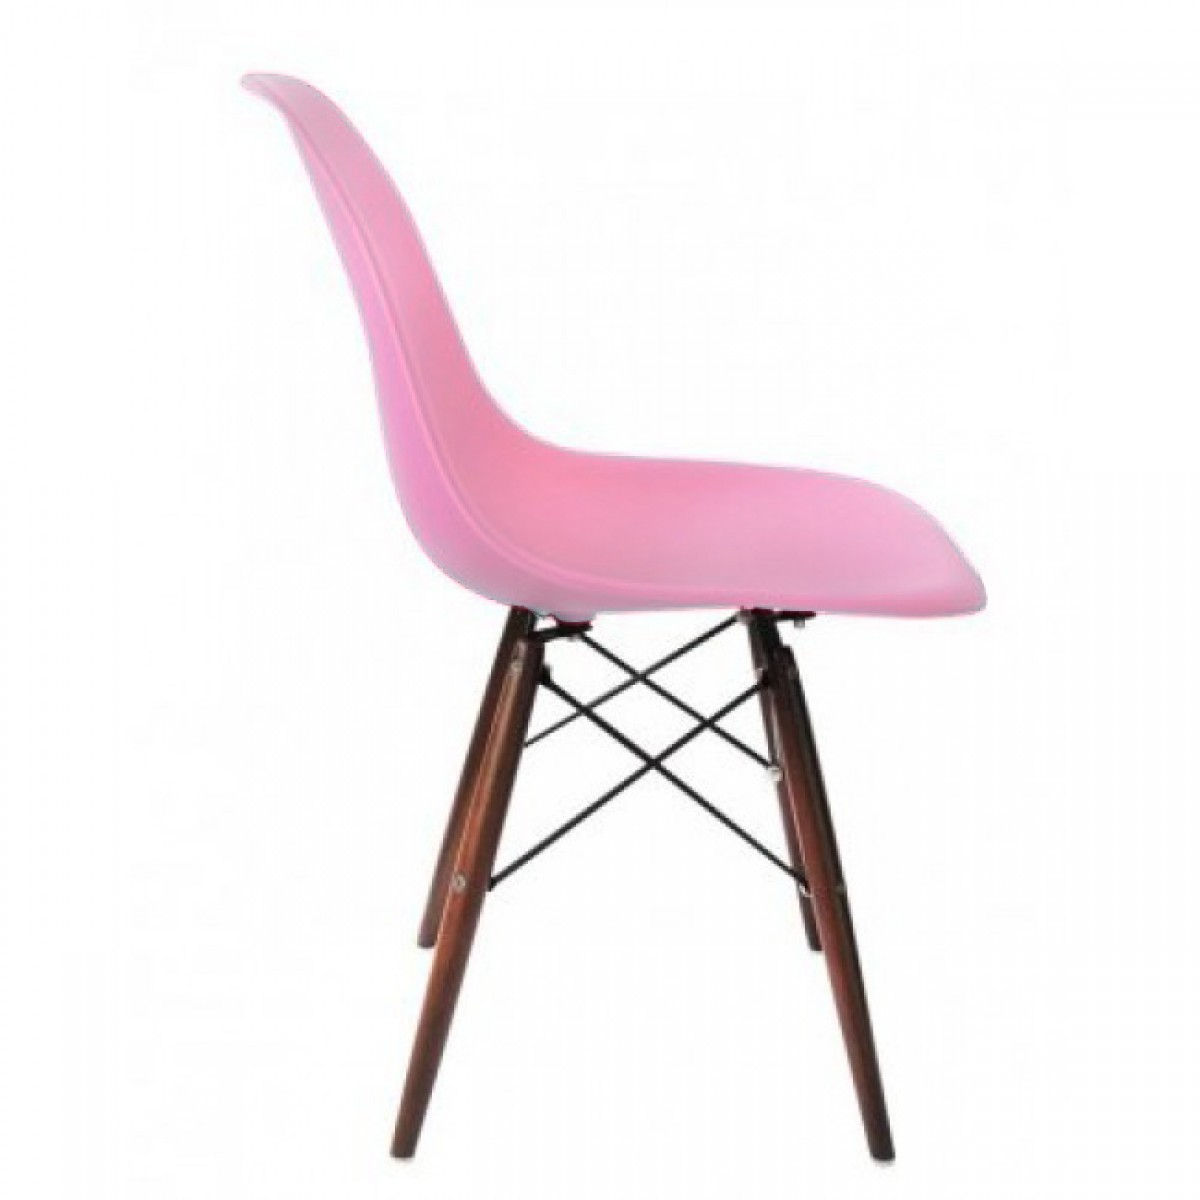 Eames Style DSW Molded Pink Plastic Dining Shell Chair  : dsw dark pink3 from www.emoderndecor.com size 1200 x 1200 jpeg 73kB